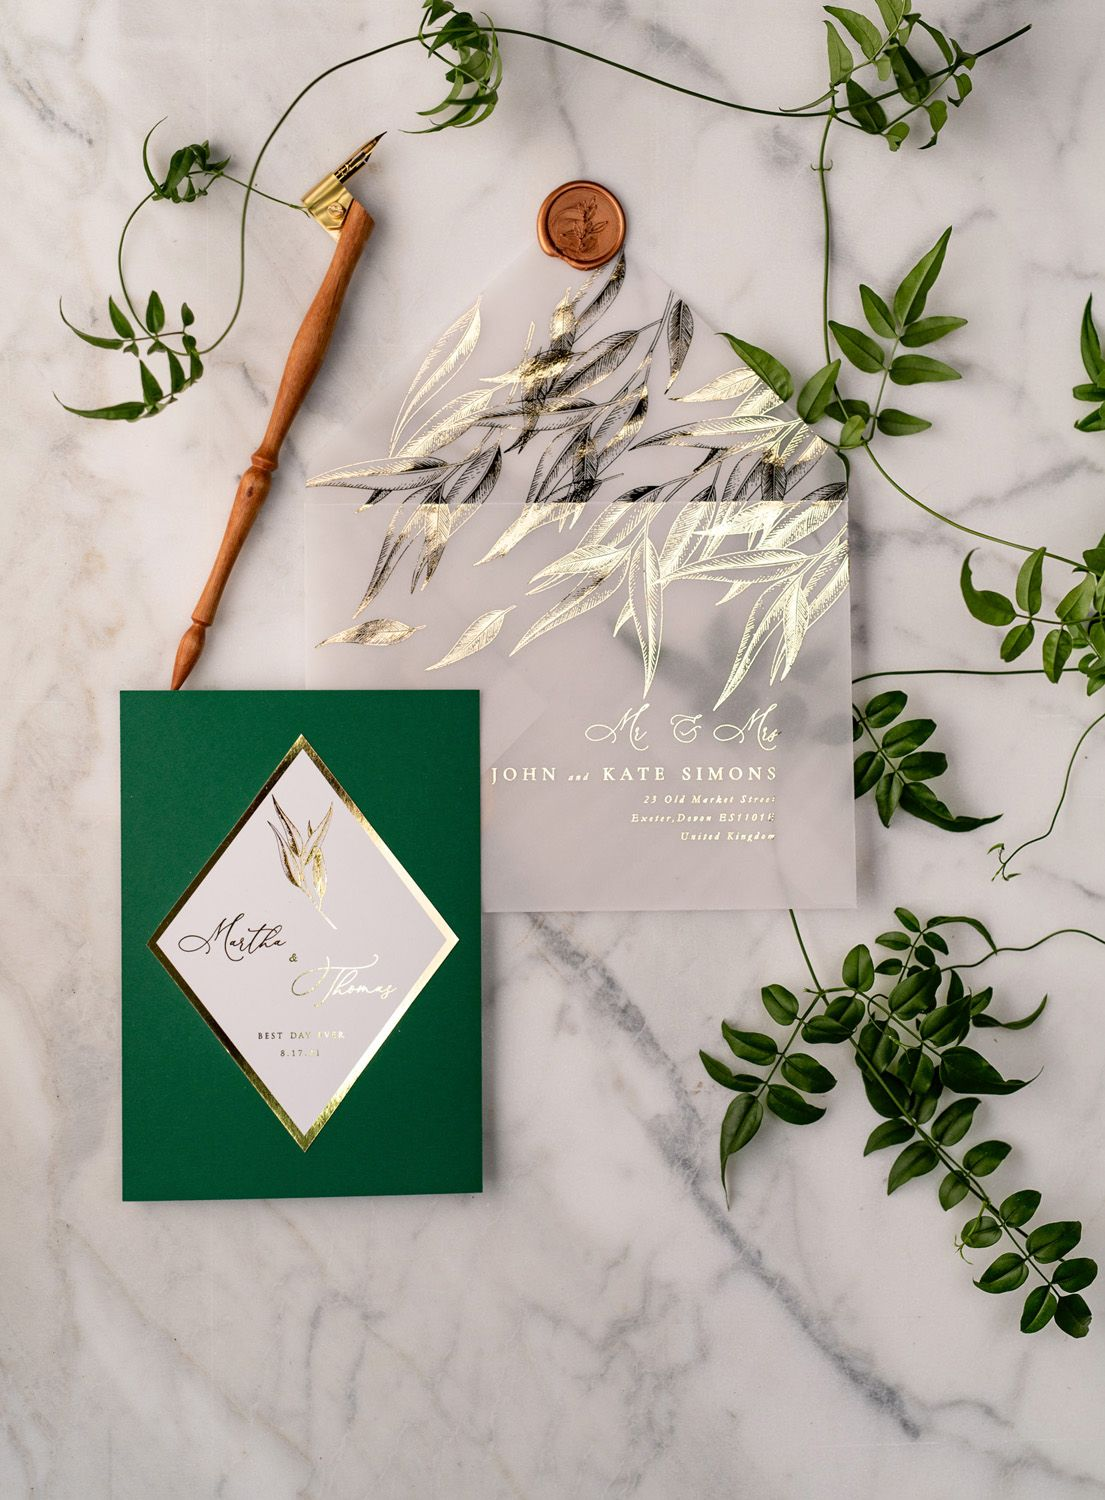 Green and gold luxory wedding invitations eucalyptus